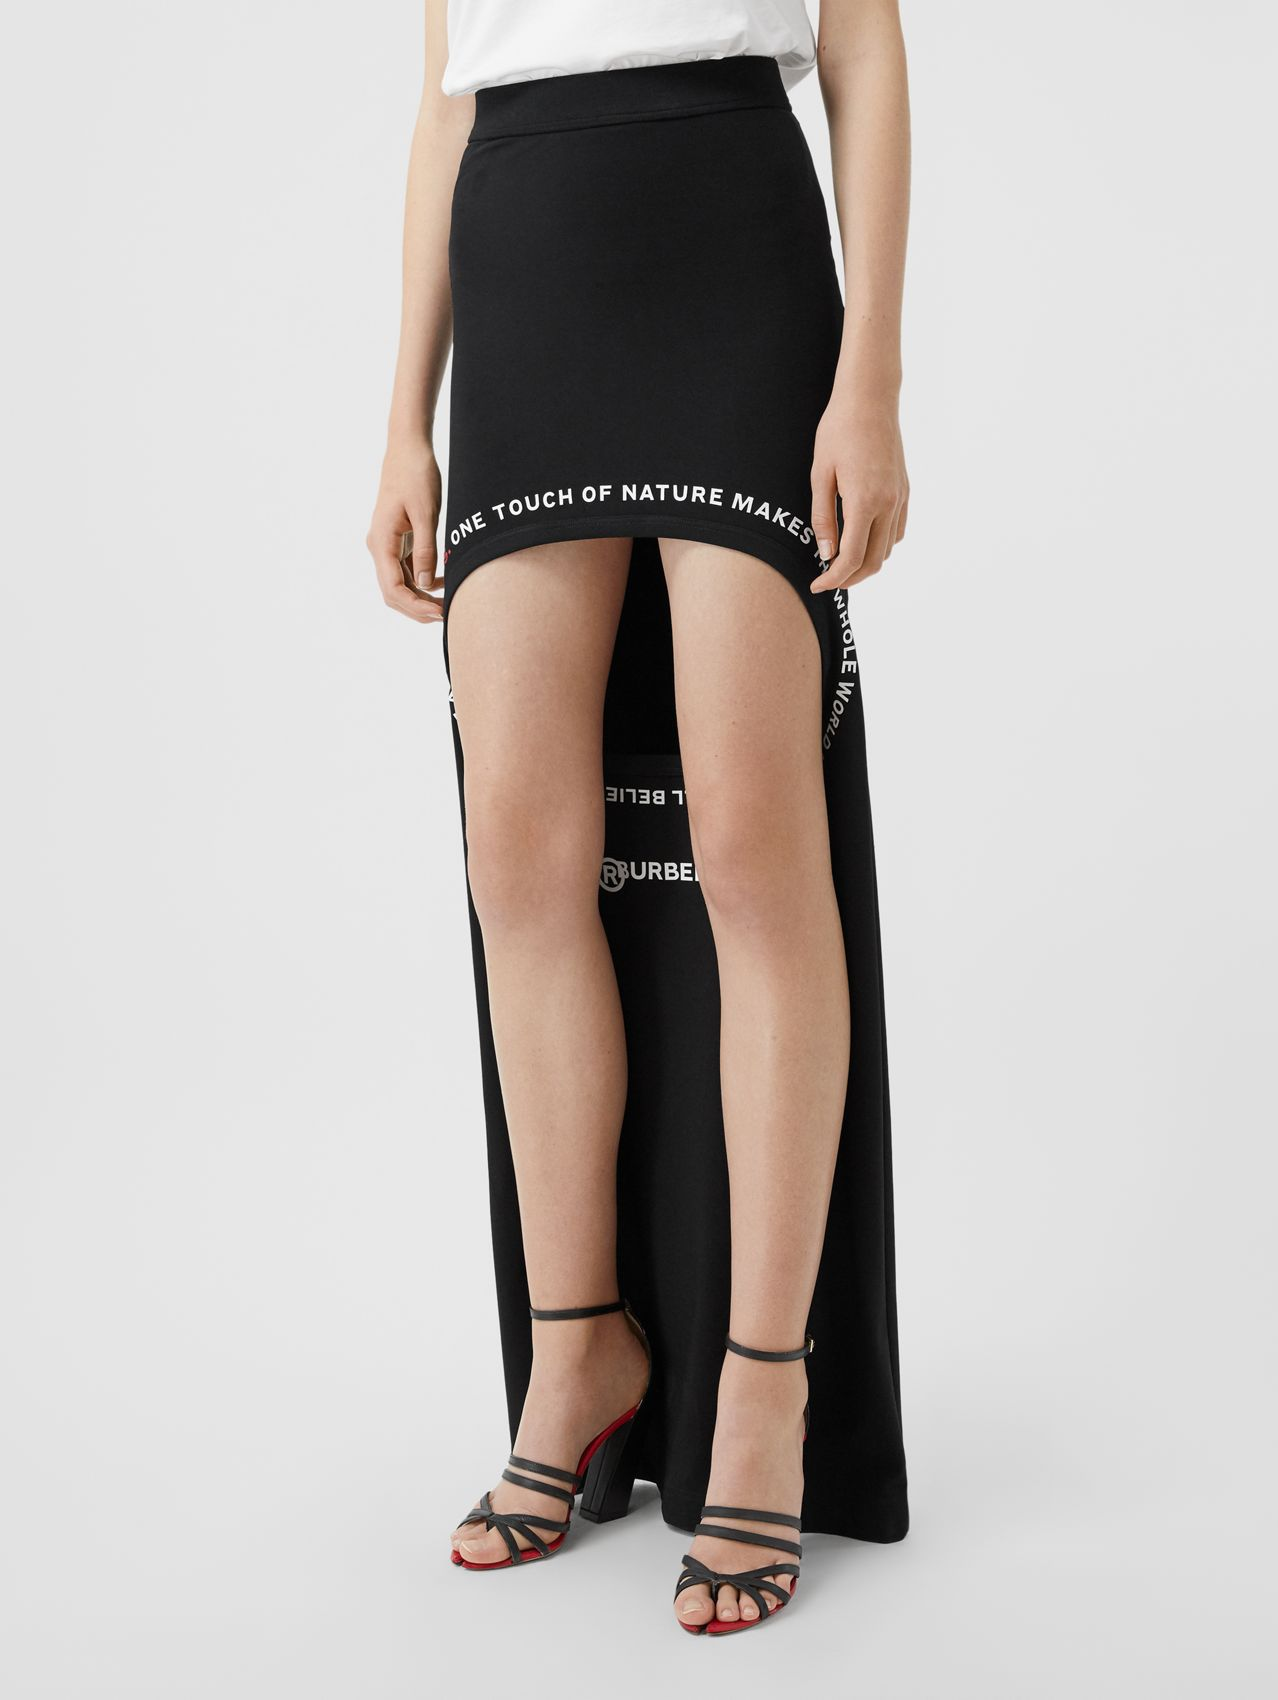 Montage Print Stretch Jersey Step-through Skirt in Black